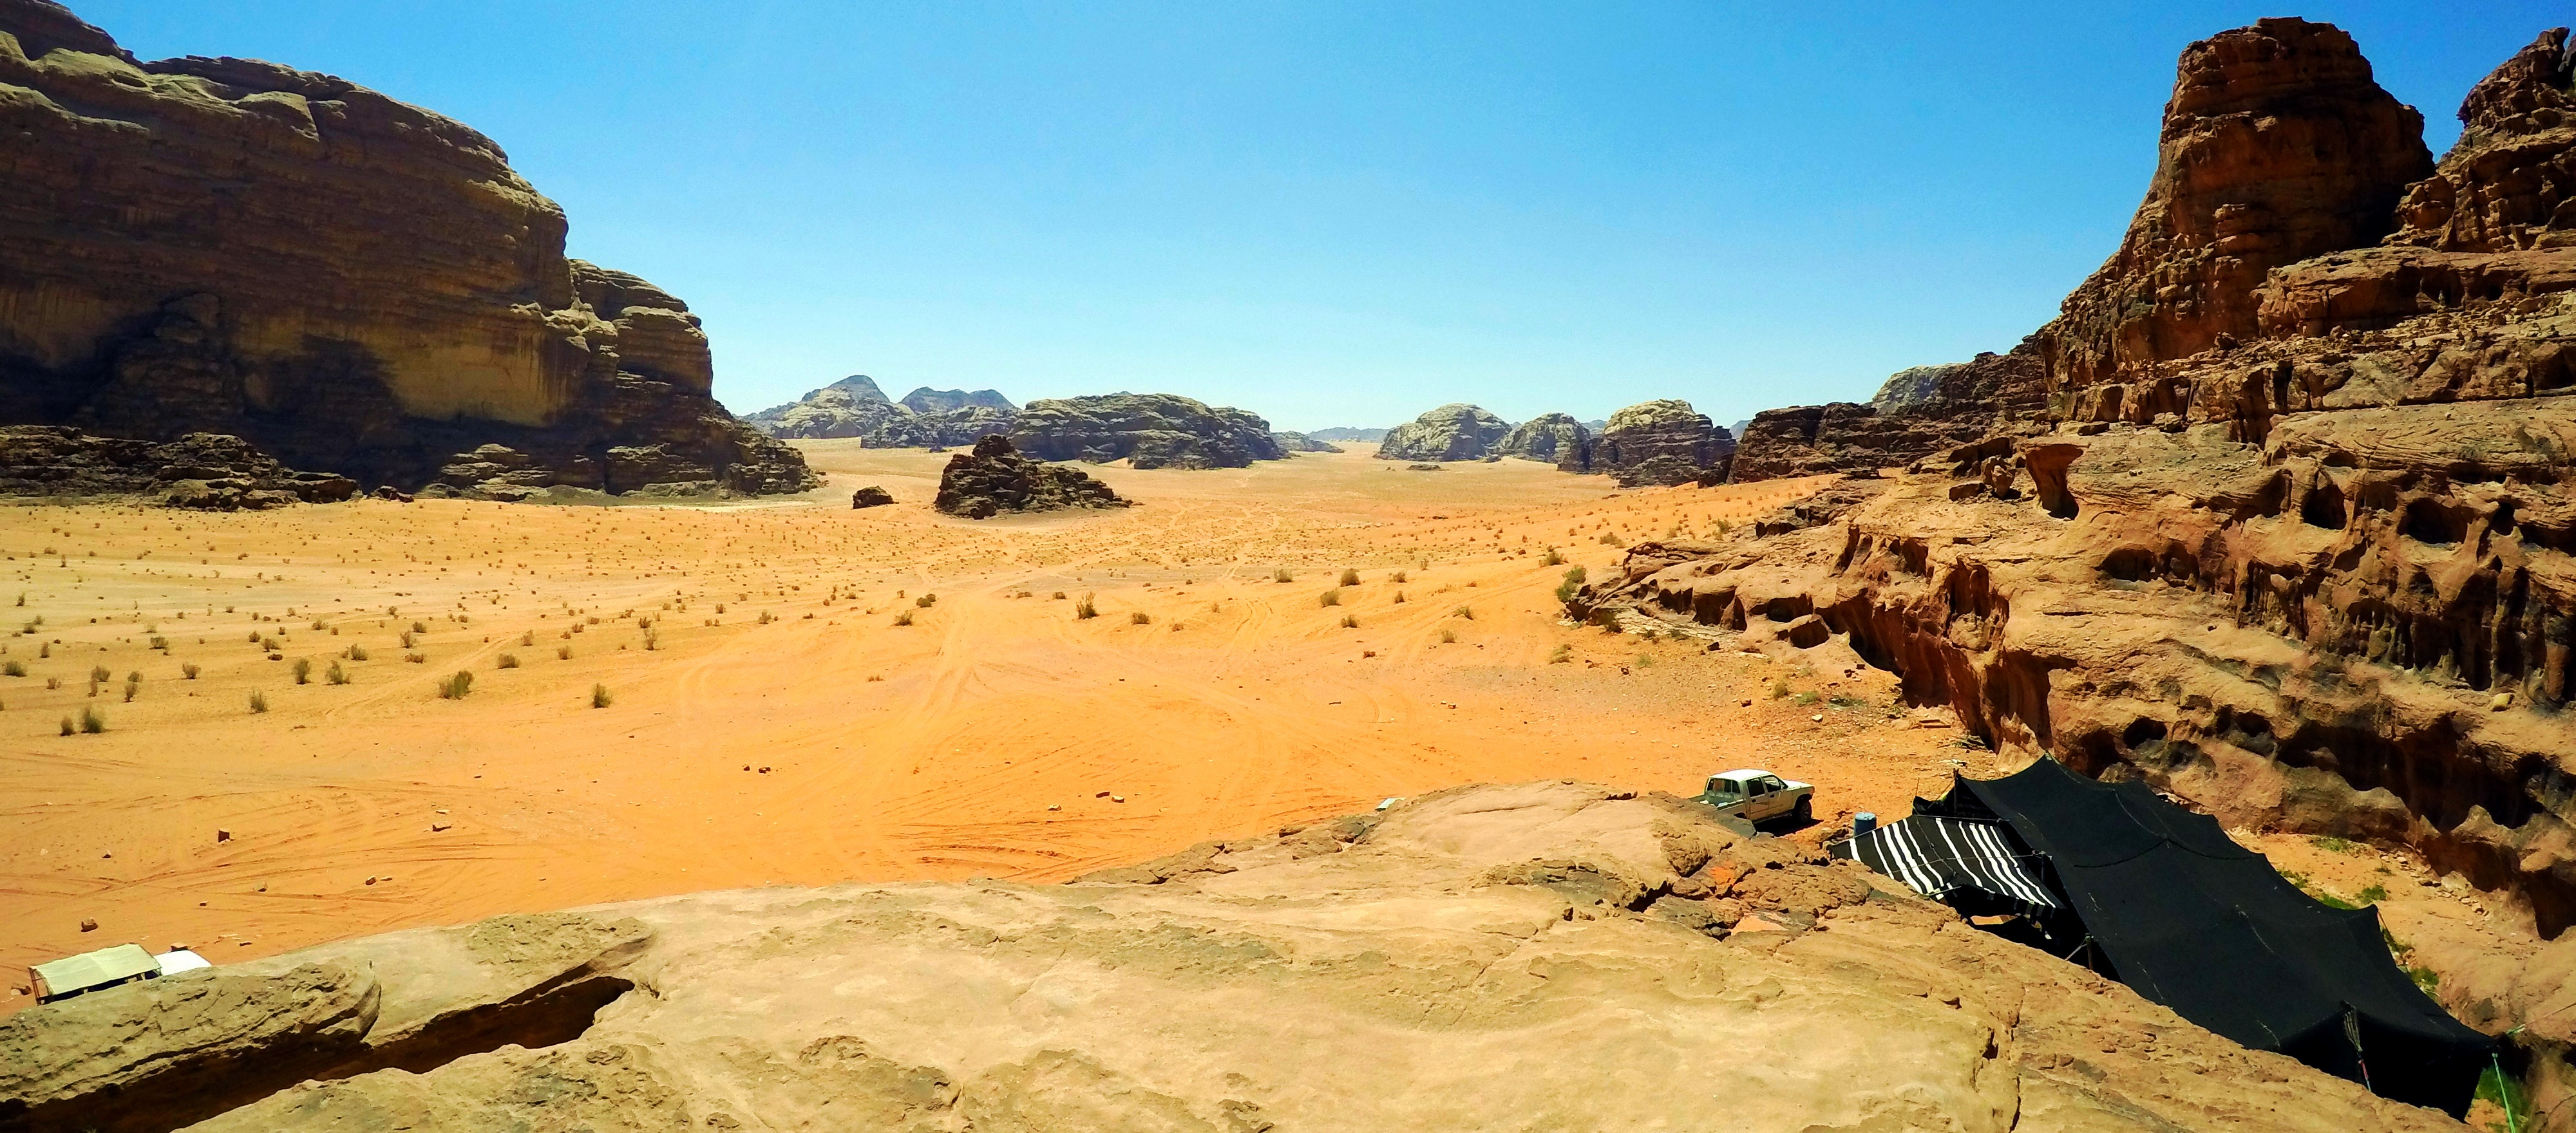 The Magic of Wadi Rum